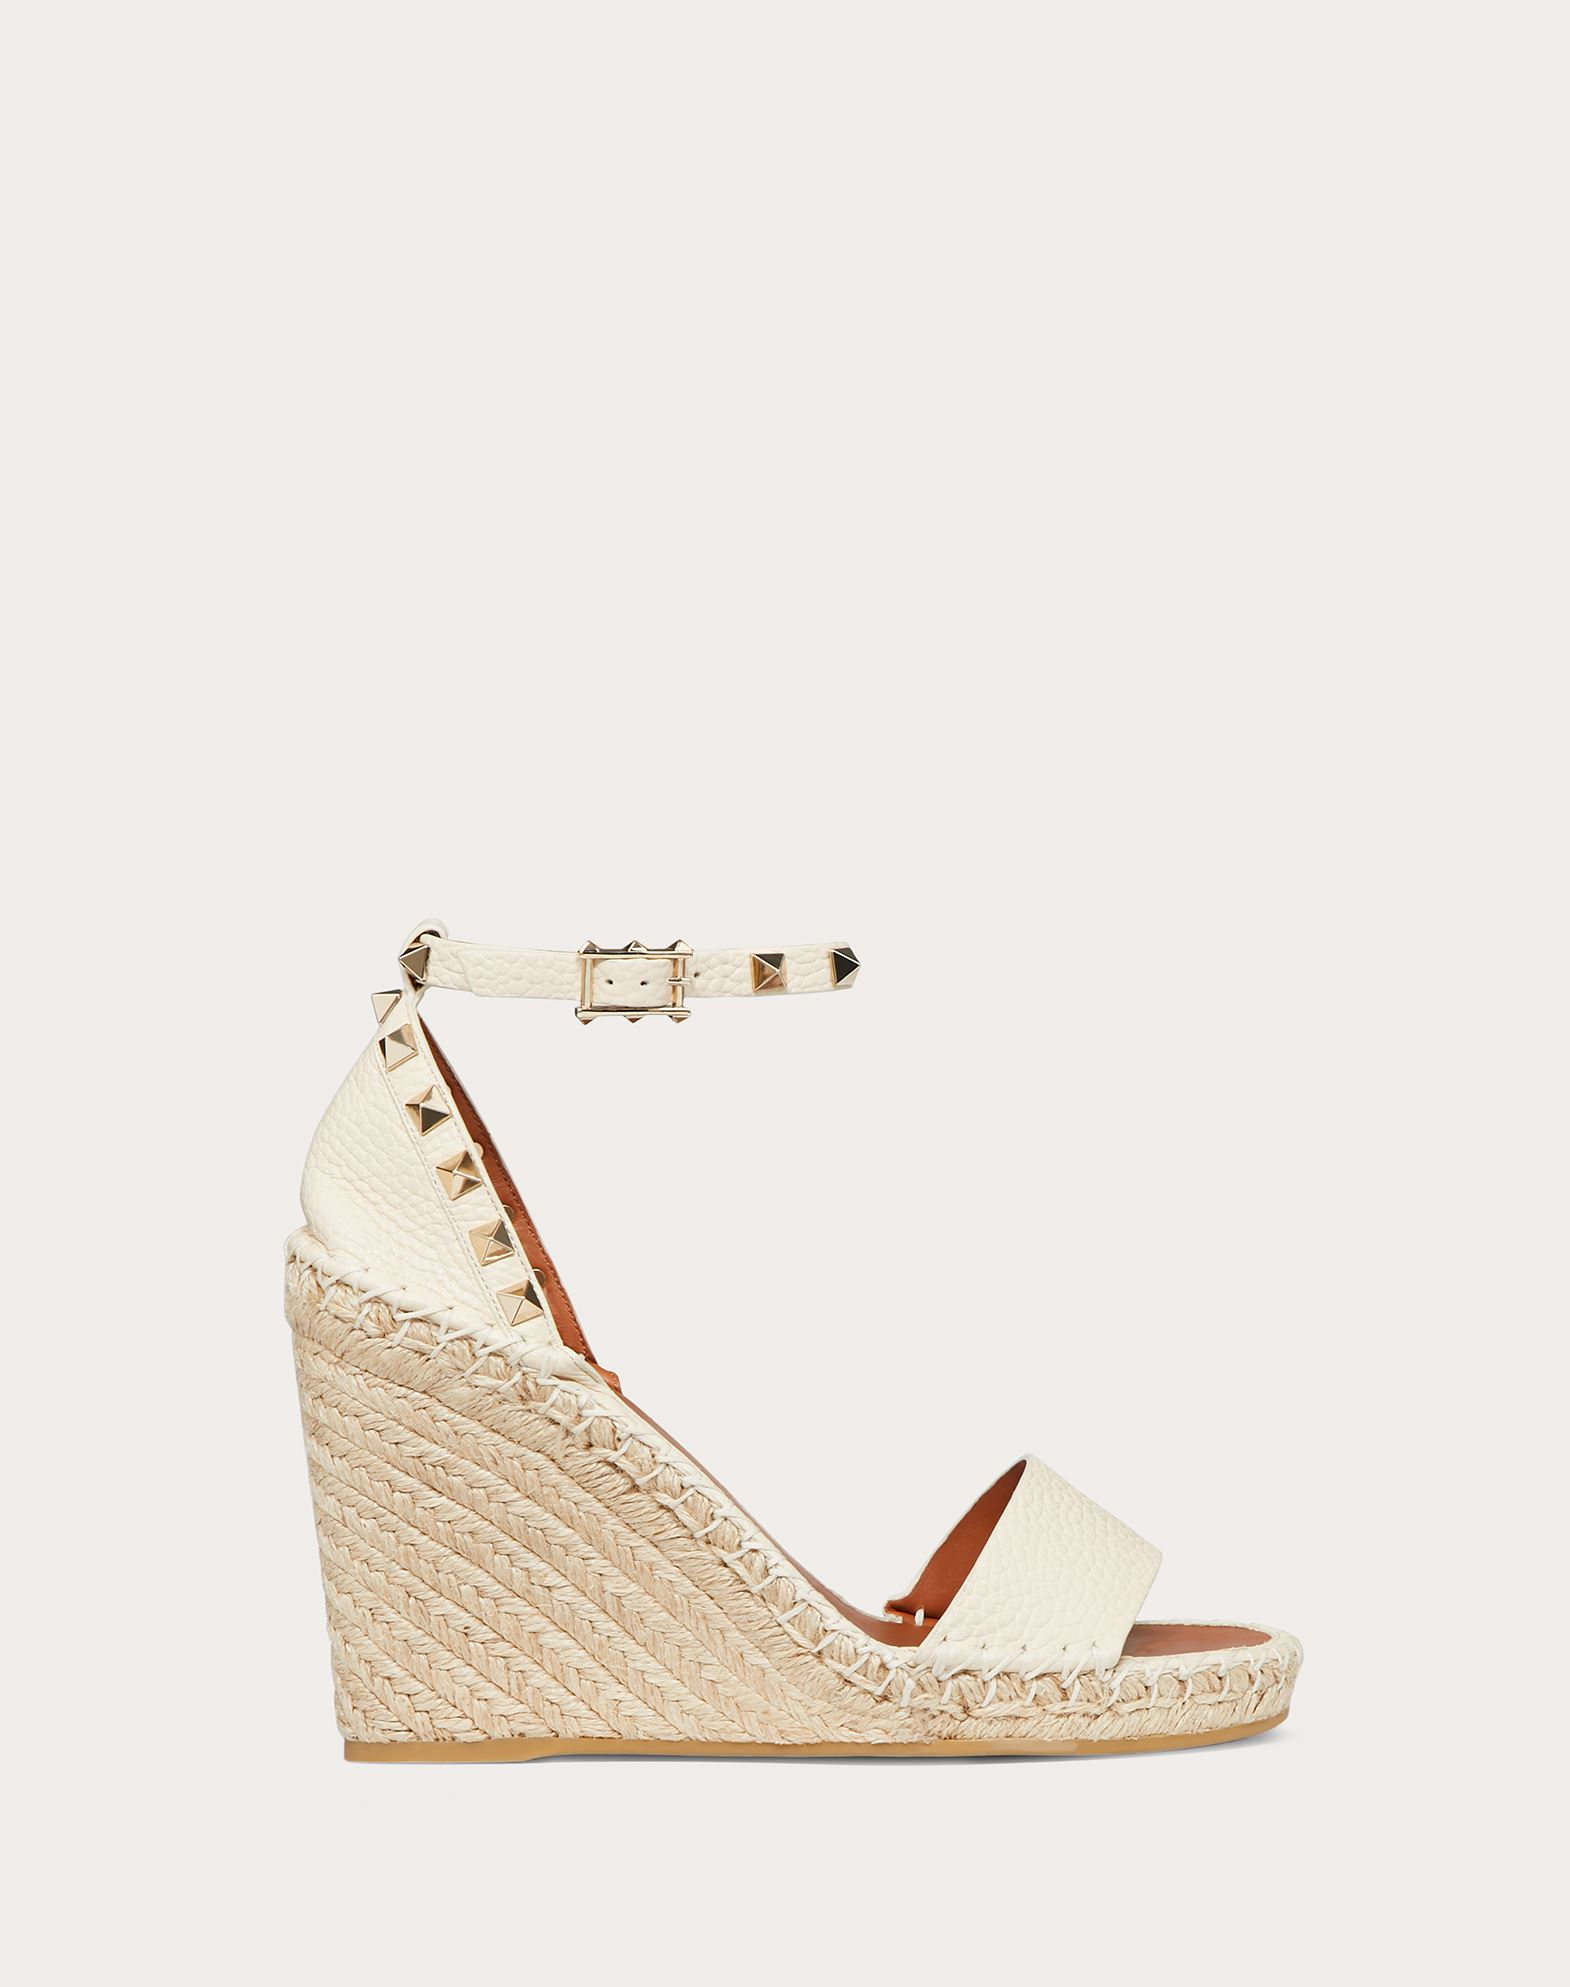 Grain Calfskin Leather Rockstud Double Wedge Sandal 95mm